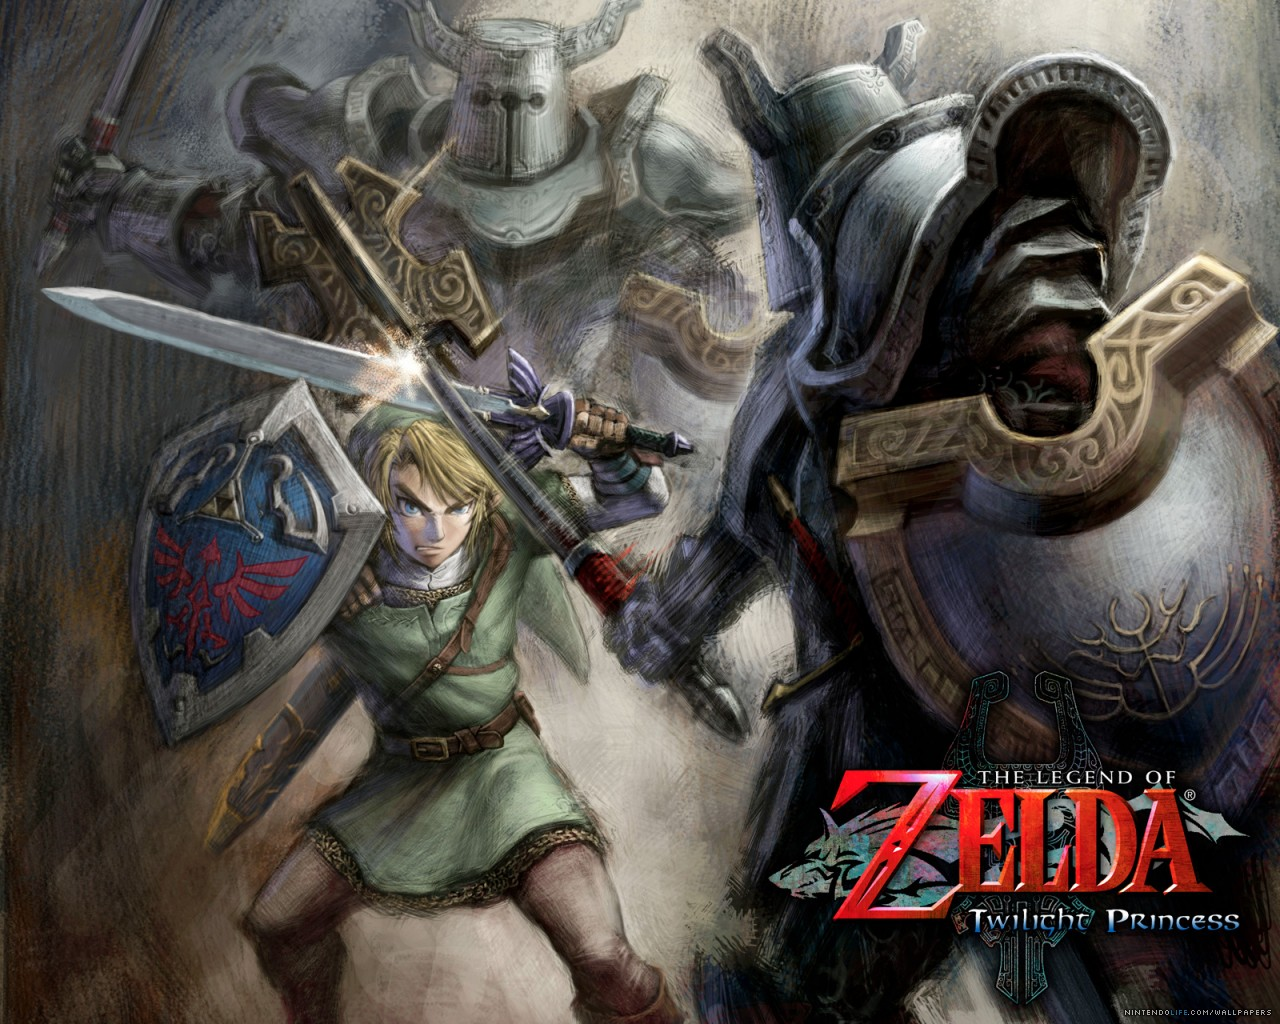 The Legend of Zelda: Twilight Princess Twilight Princess Wallpapers